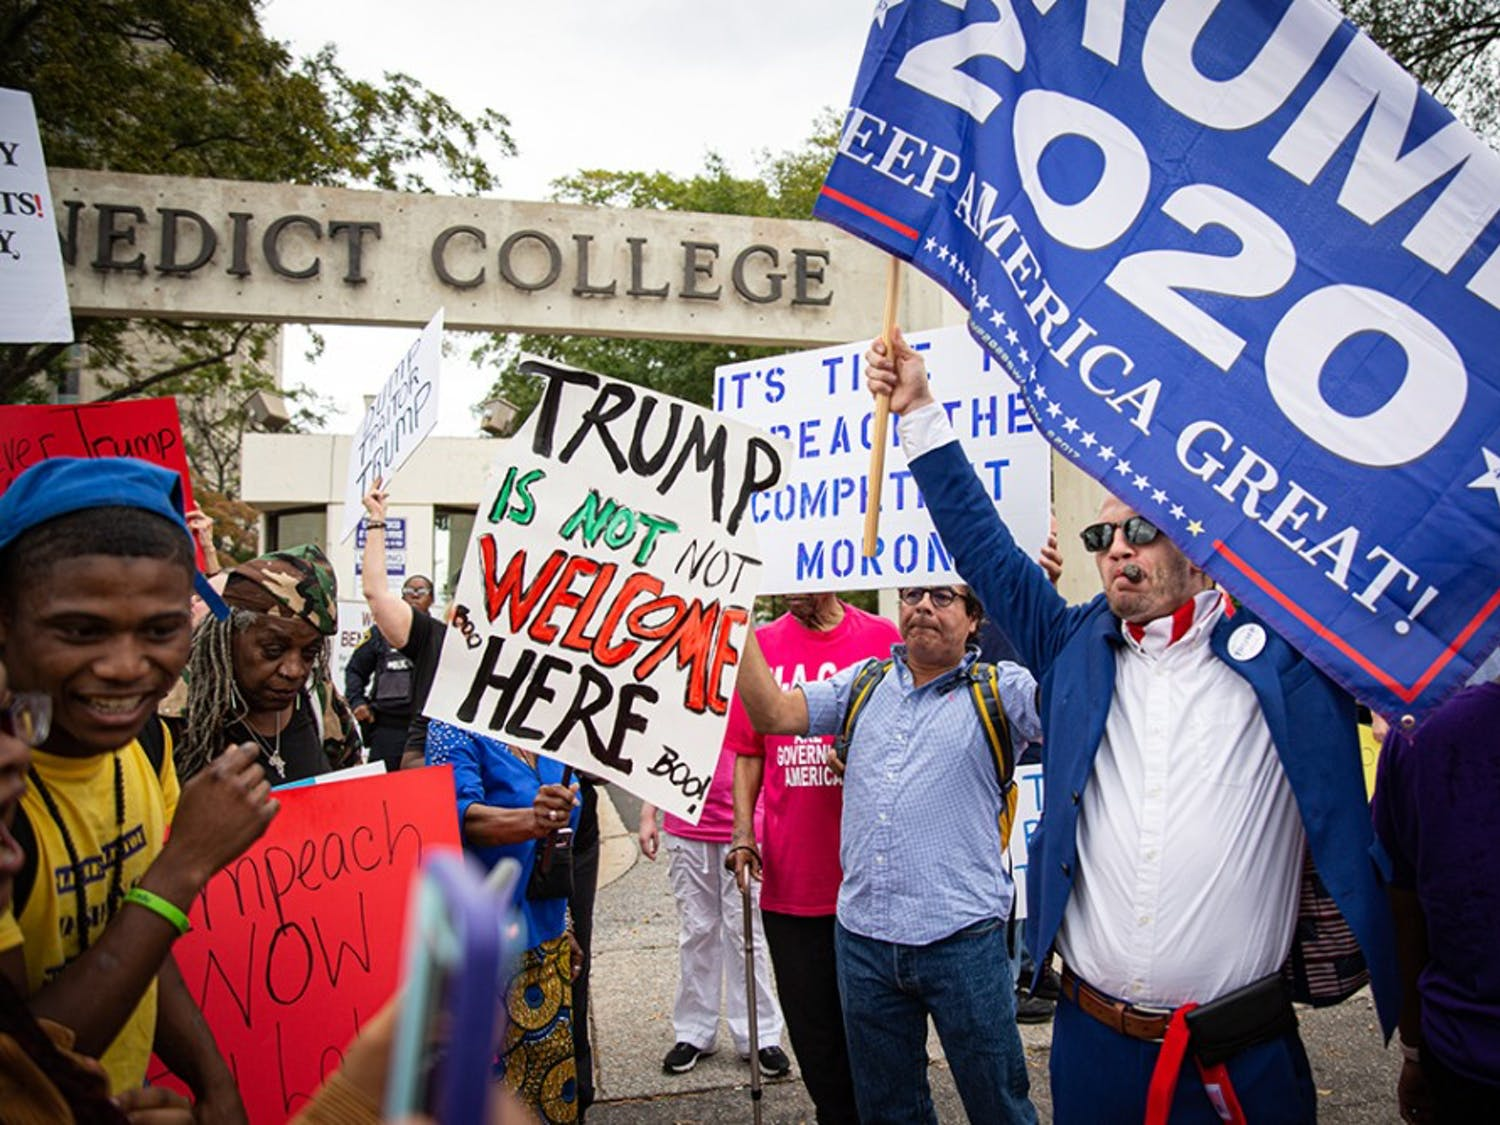 Protestors and President Trump supporters gather outside of Benedict College Oct. 25, 2019.